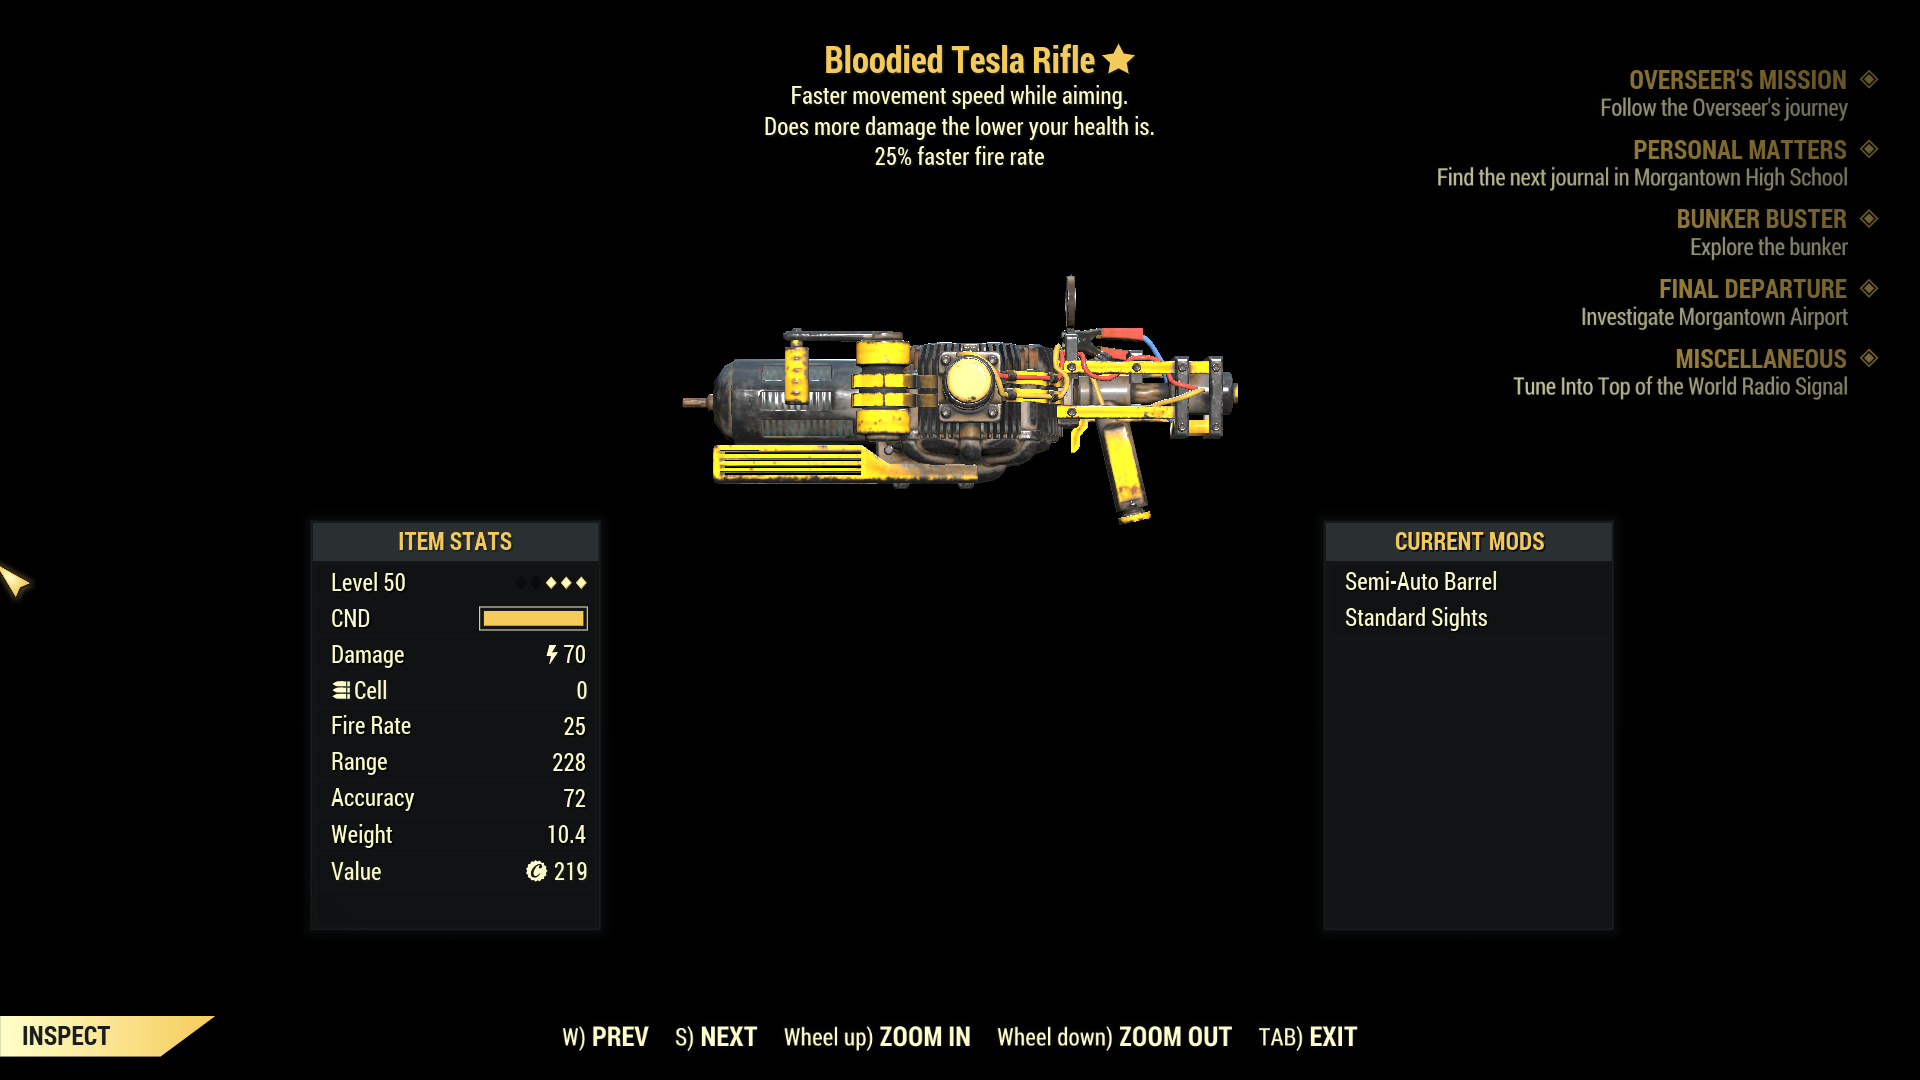 ★★★ Bloodied Tesla Rifle[25% Faster Fire Rate][Faster Movement] | FAST DELIVERY |